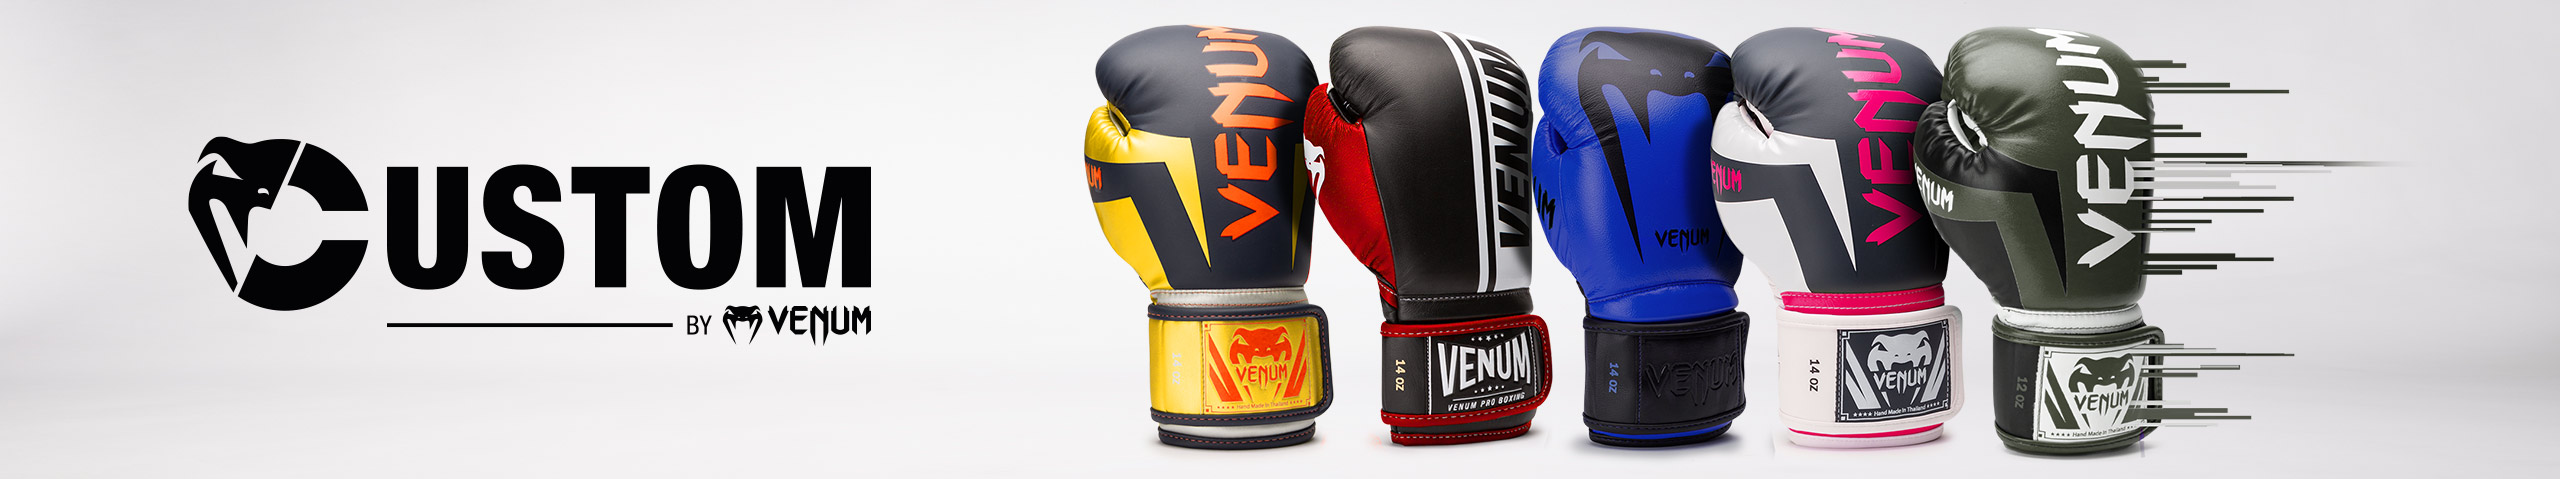 Boxing Glove : Venum boxing gloves (sparring, training & fighting gloves) | Venum.com Asia